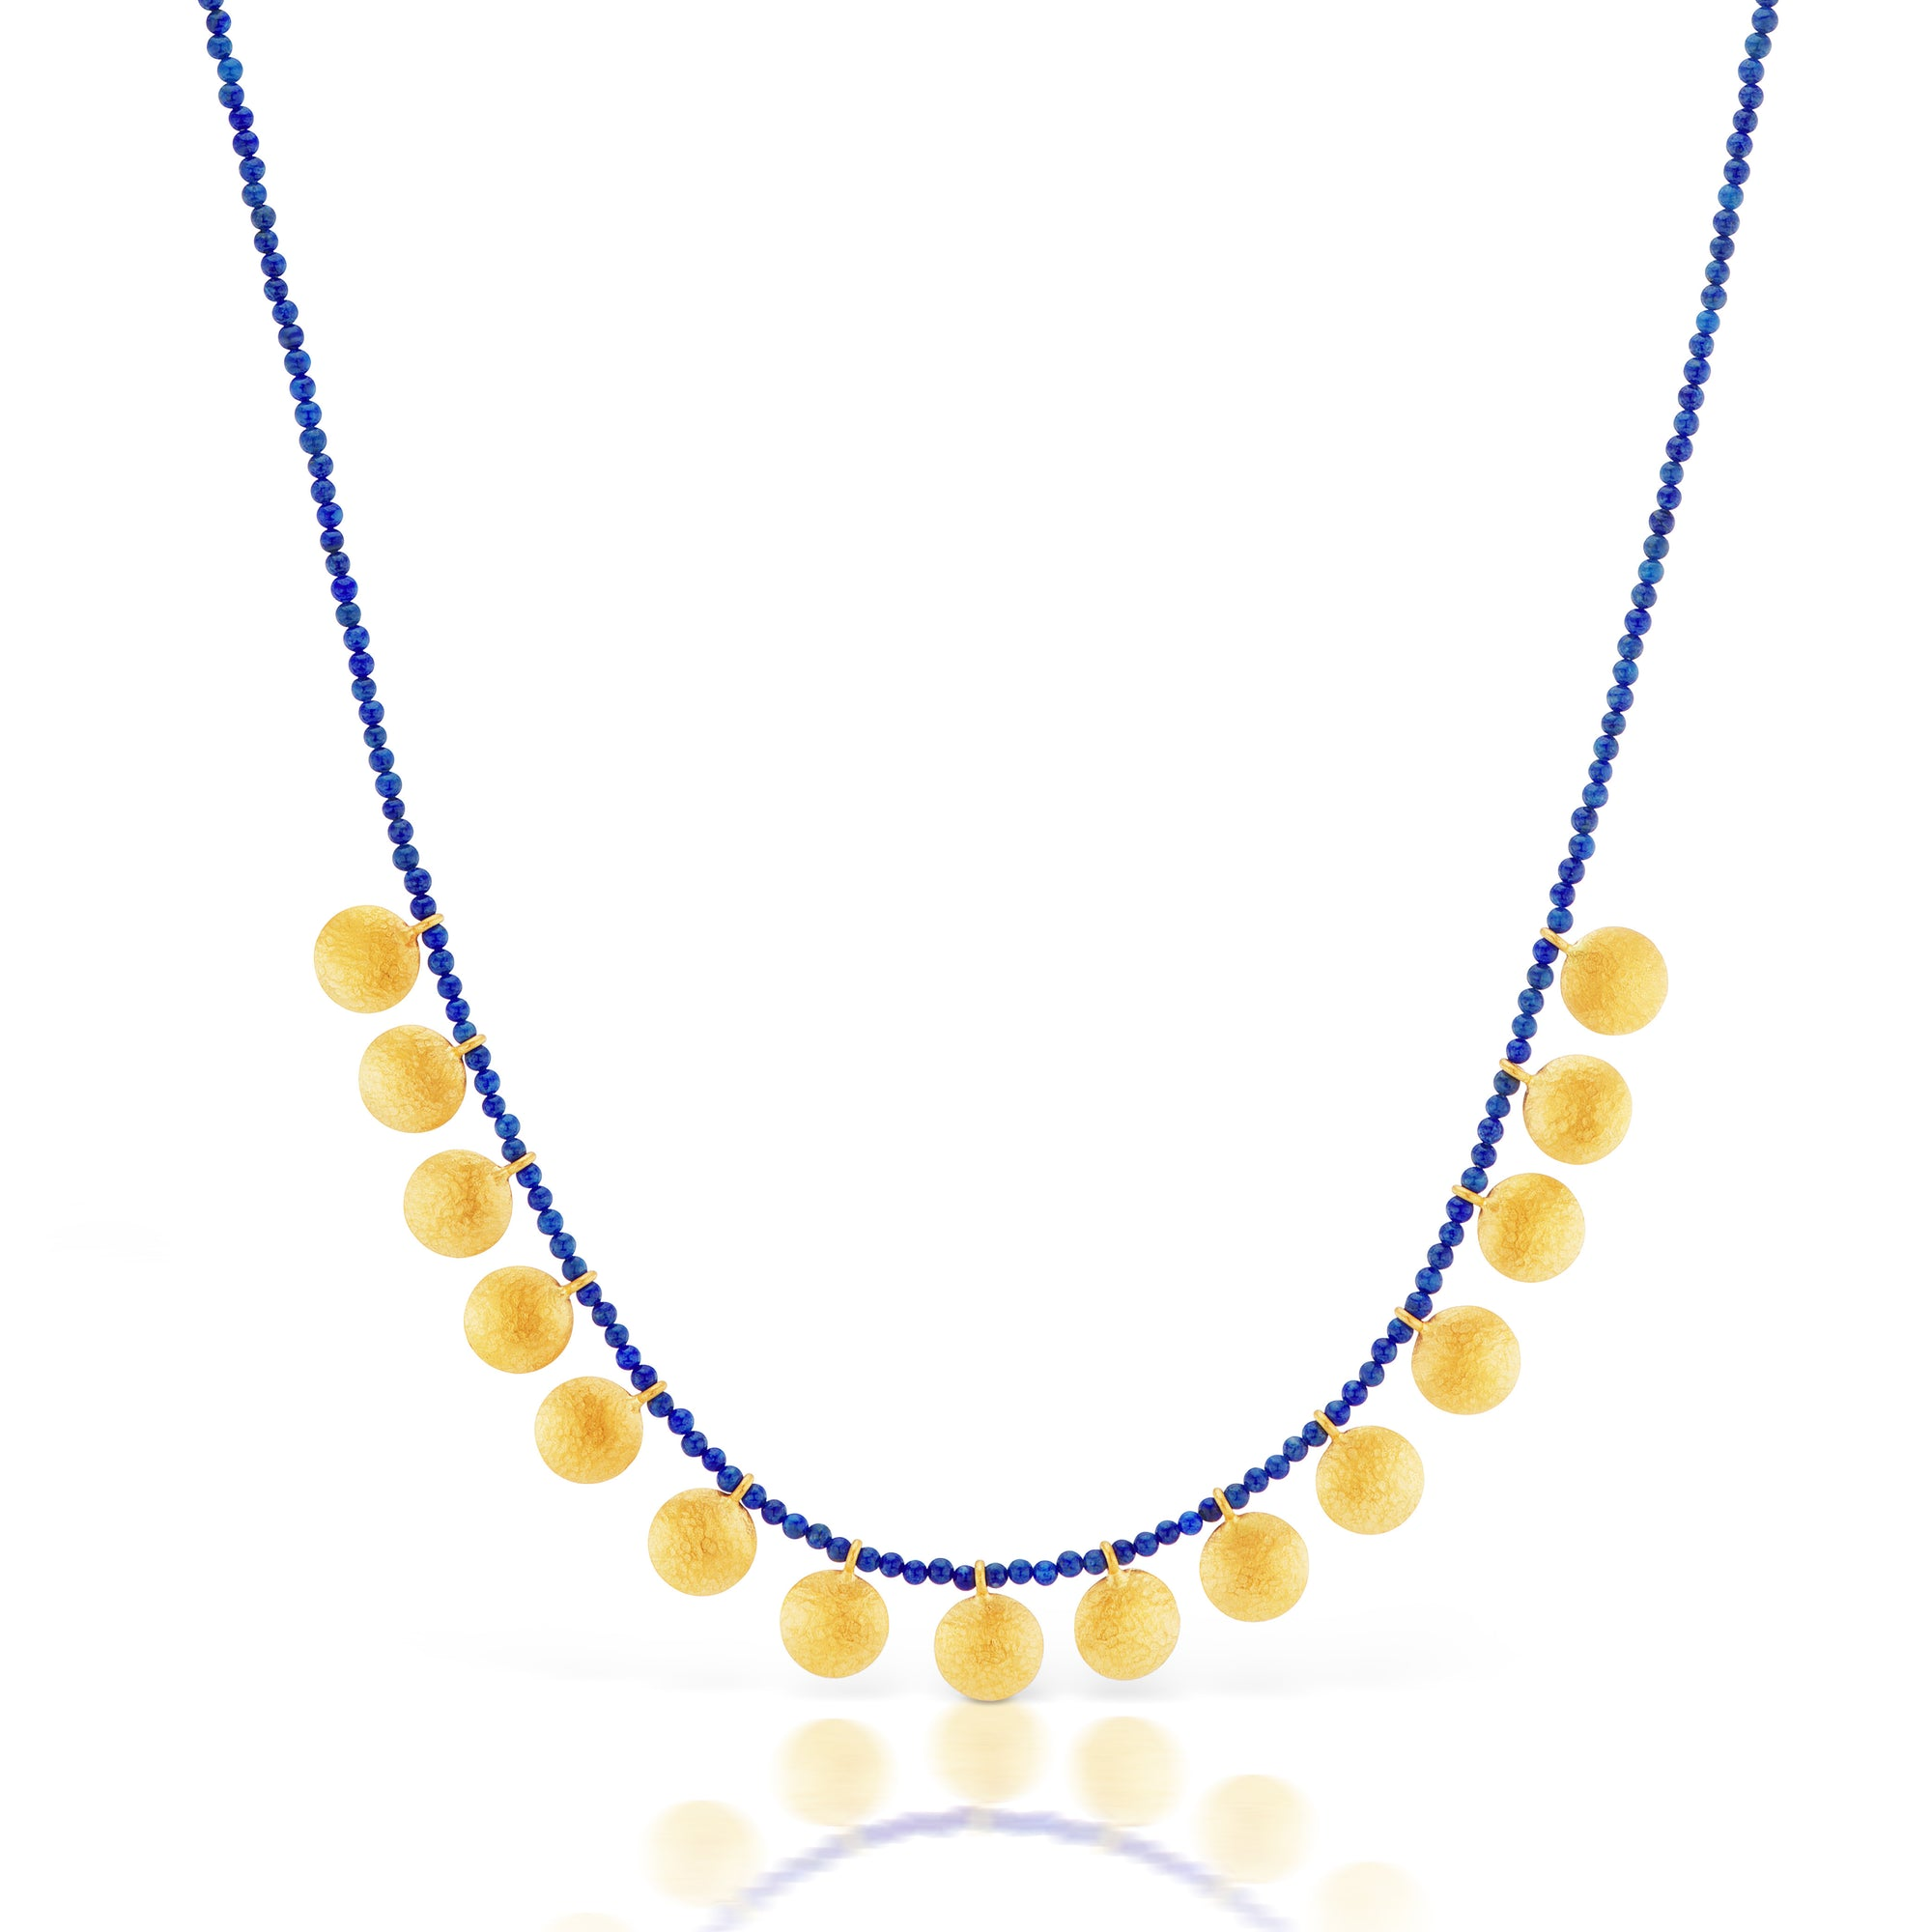 Lapis and Gold Disc Necklace in 24k Yellow Gold Desires by Mikolay